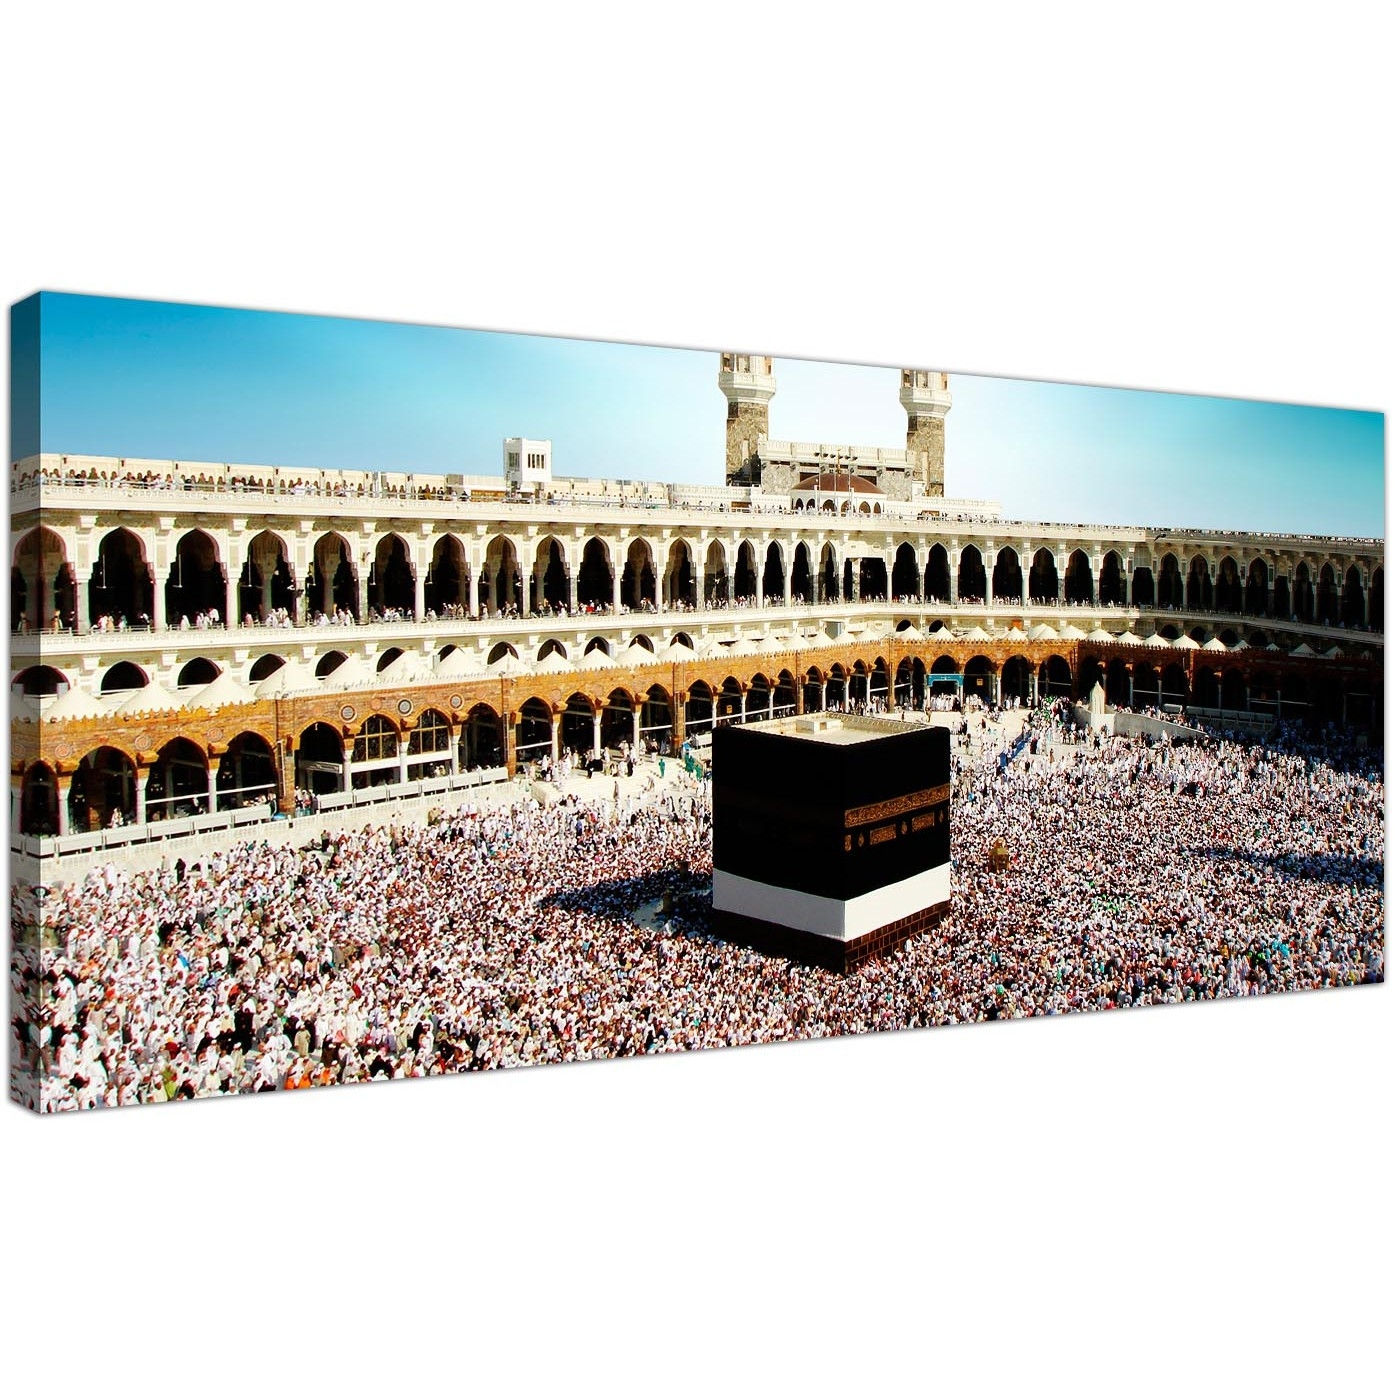 Cheap Islamic Canvas Wall Art Prints Of Muslim Pilgrimage To Mecca Intended For 2018 Islamic Canvas Wall Art (View 5 of 15)